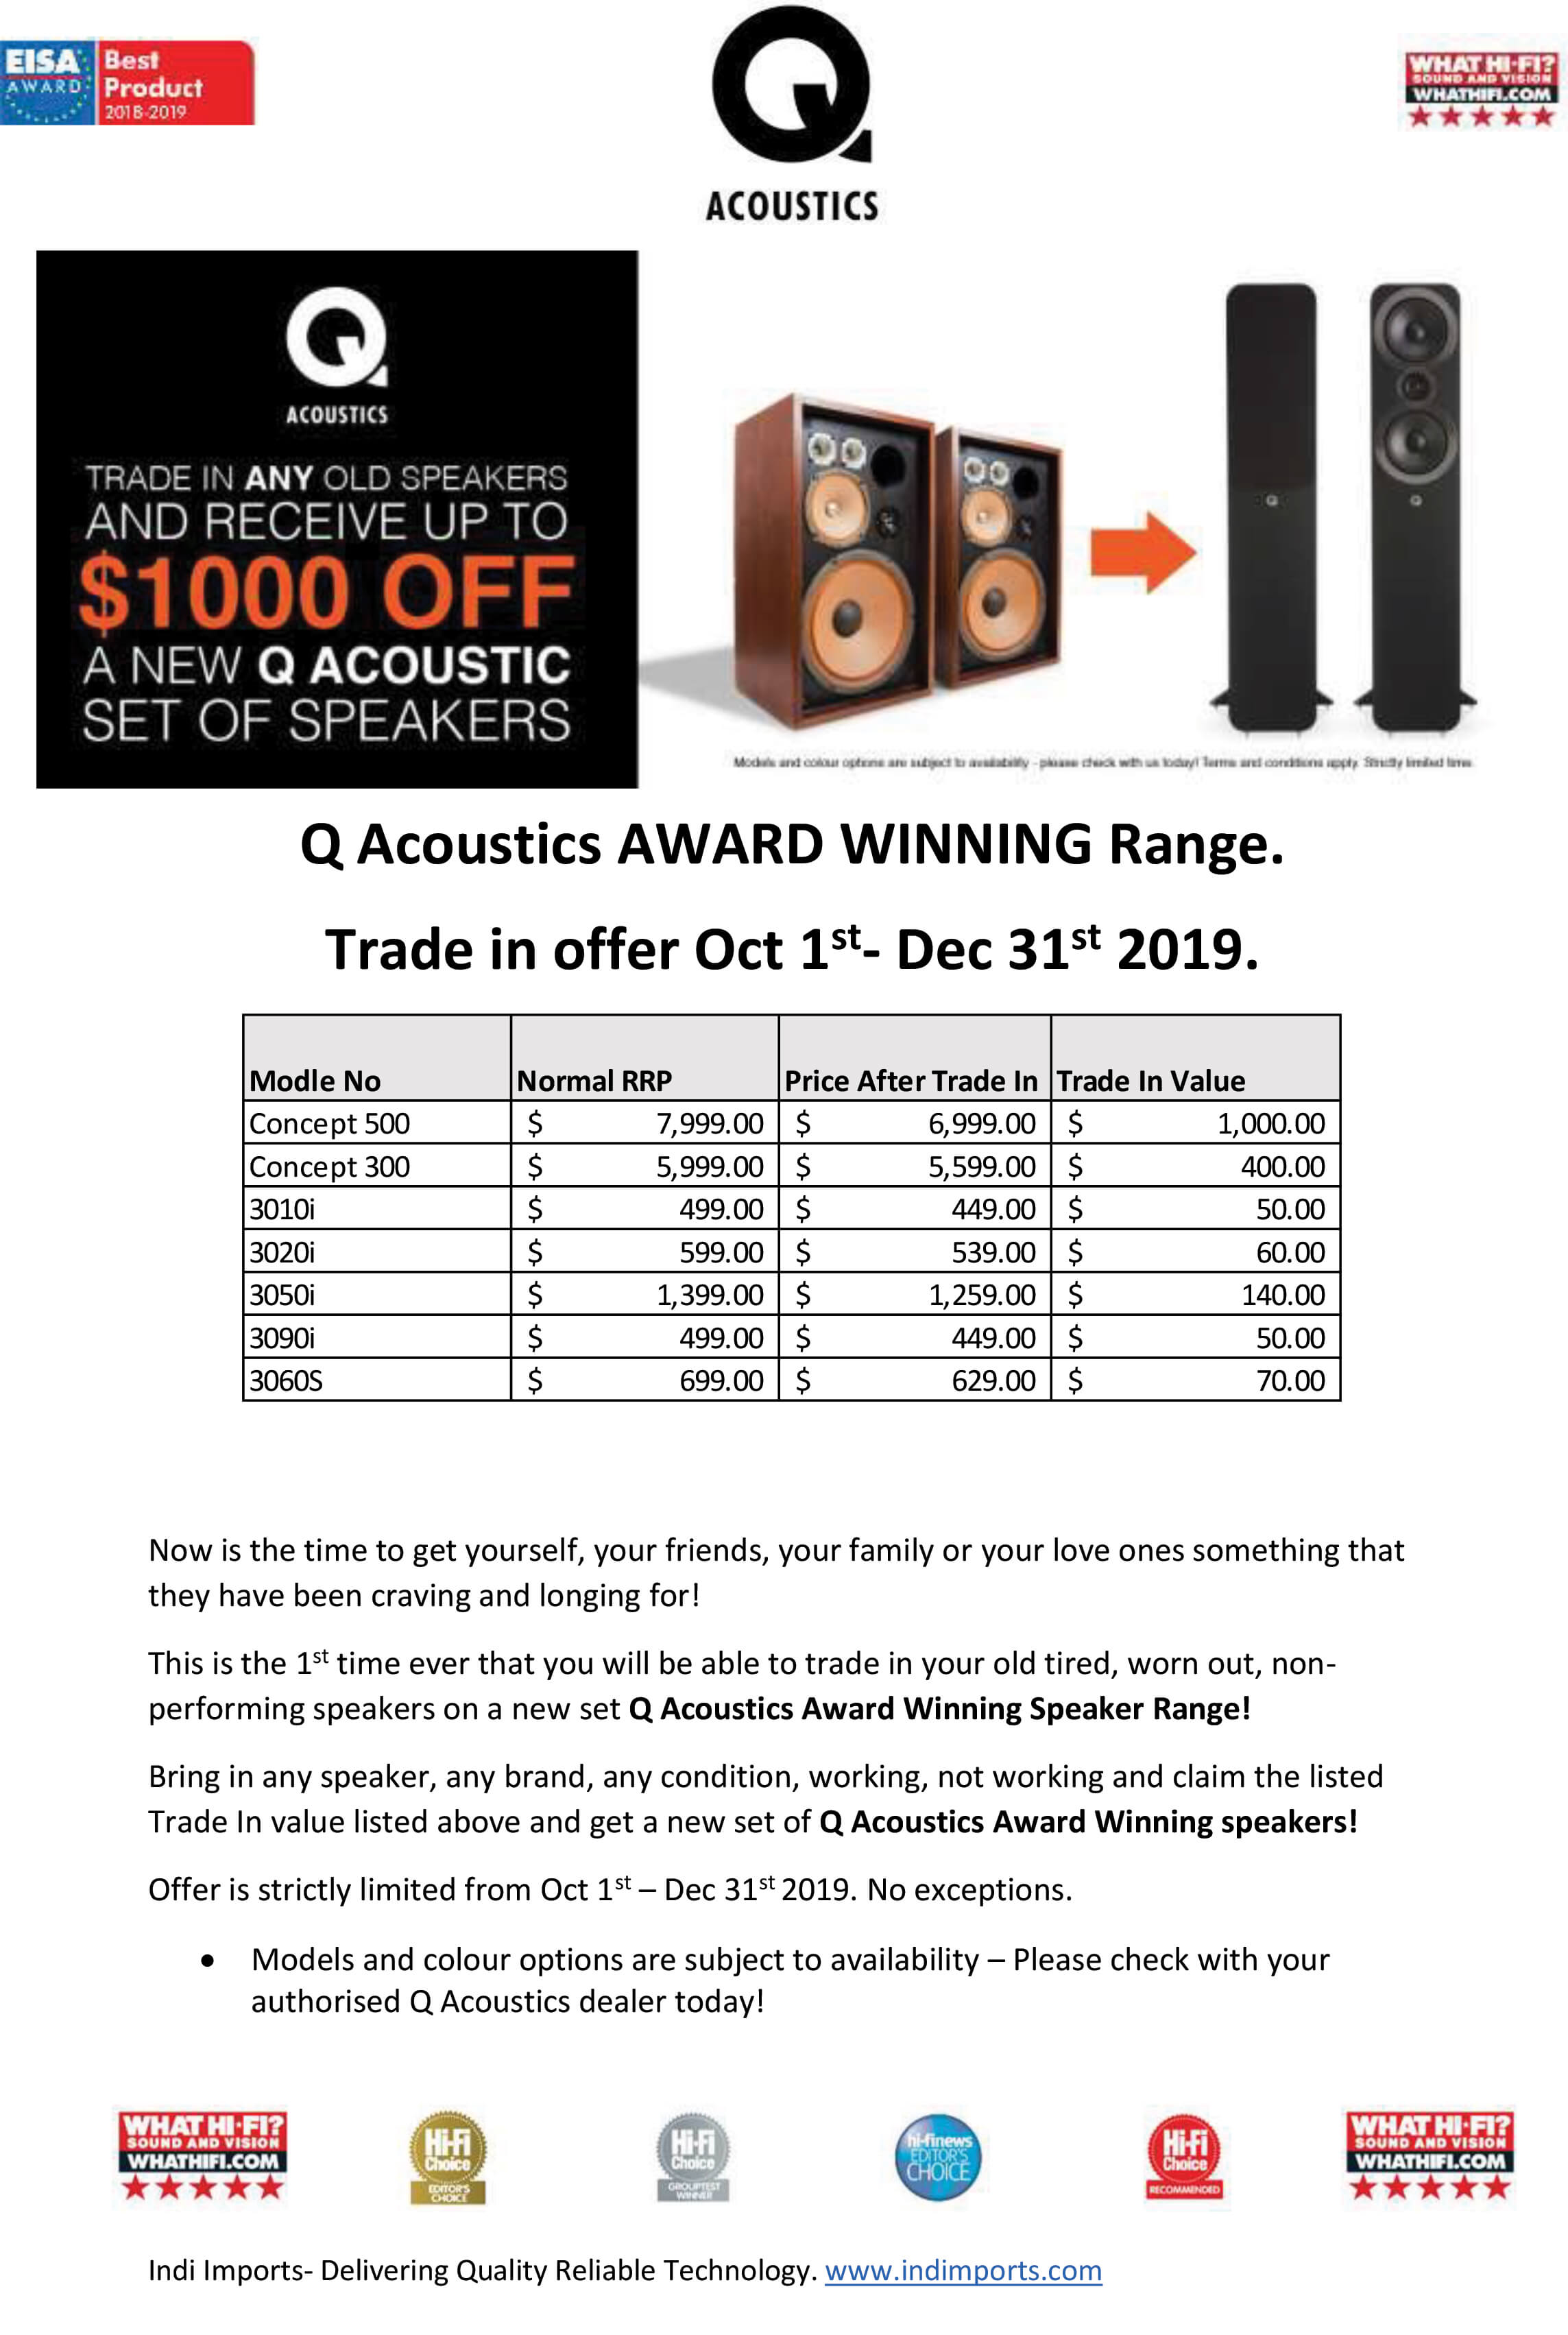 Q Acoustics Trade In Promotion 2019